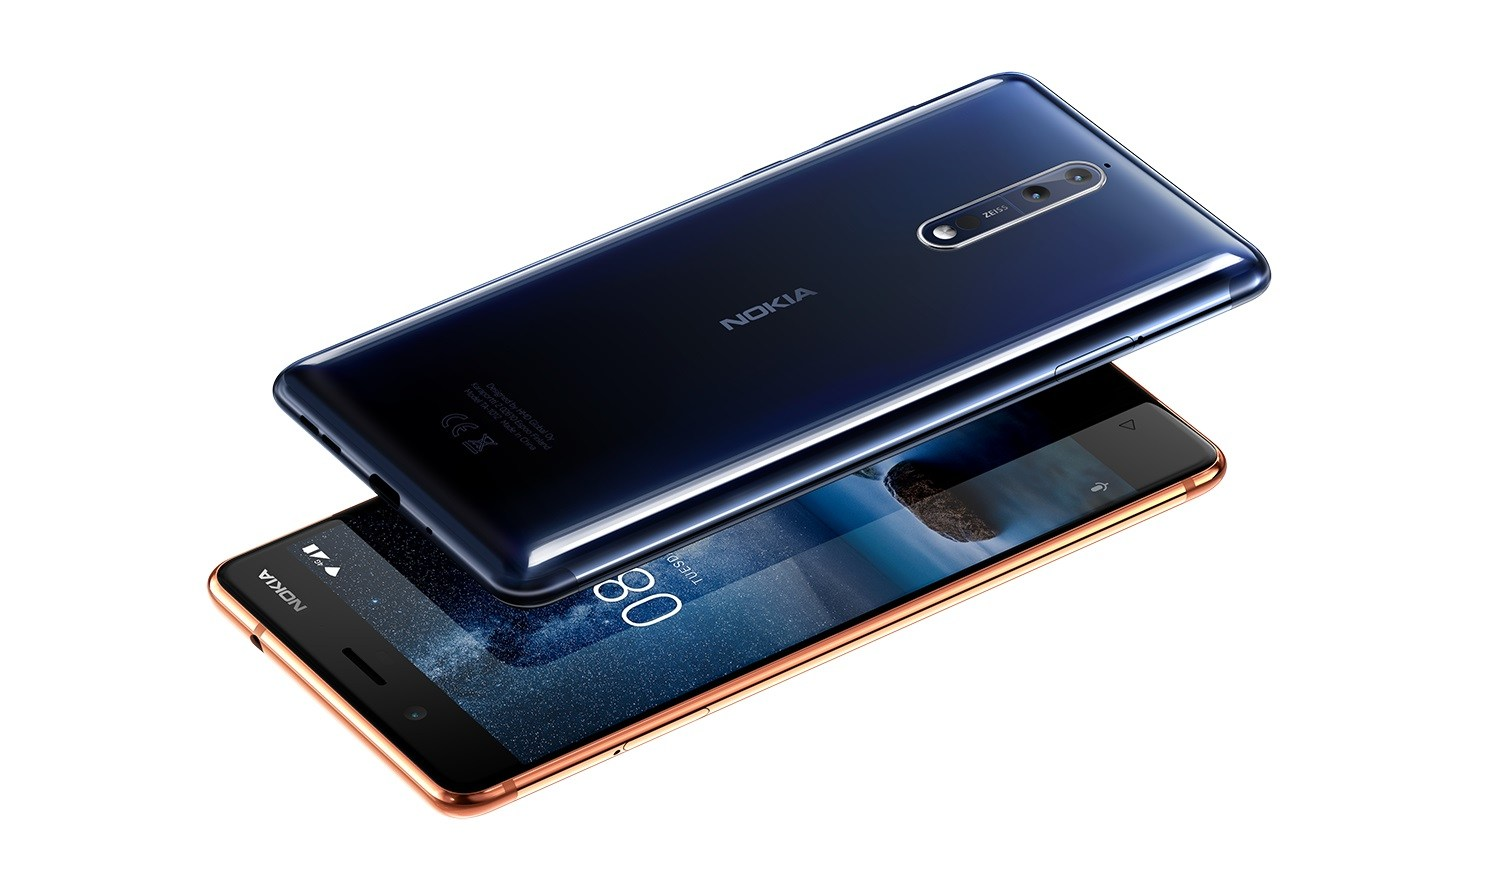 nokia-8-is-coming-in-octoberwith-6gb-ram-and-128gb-memory